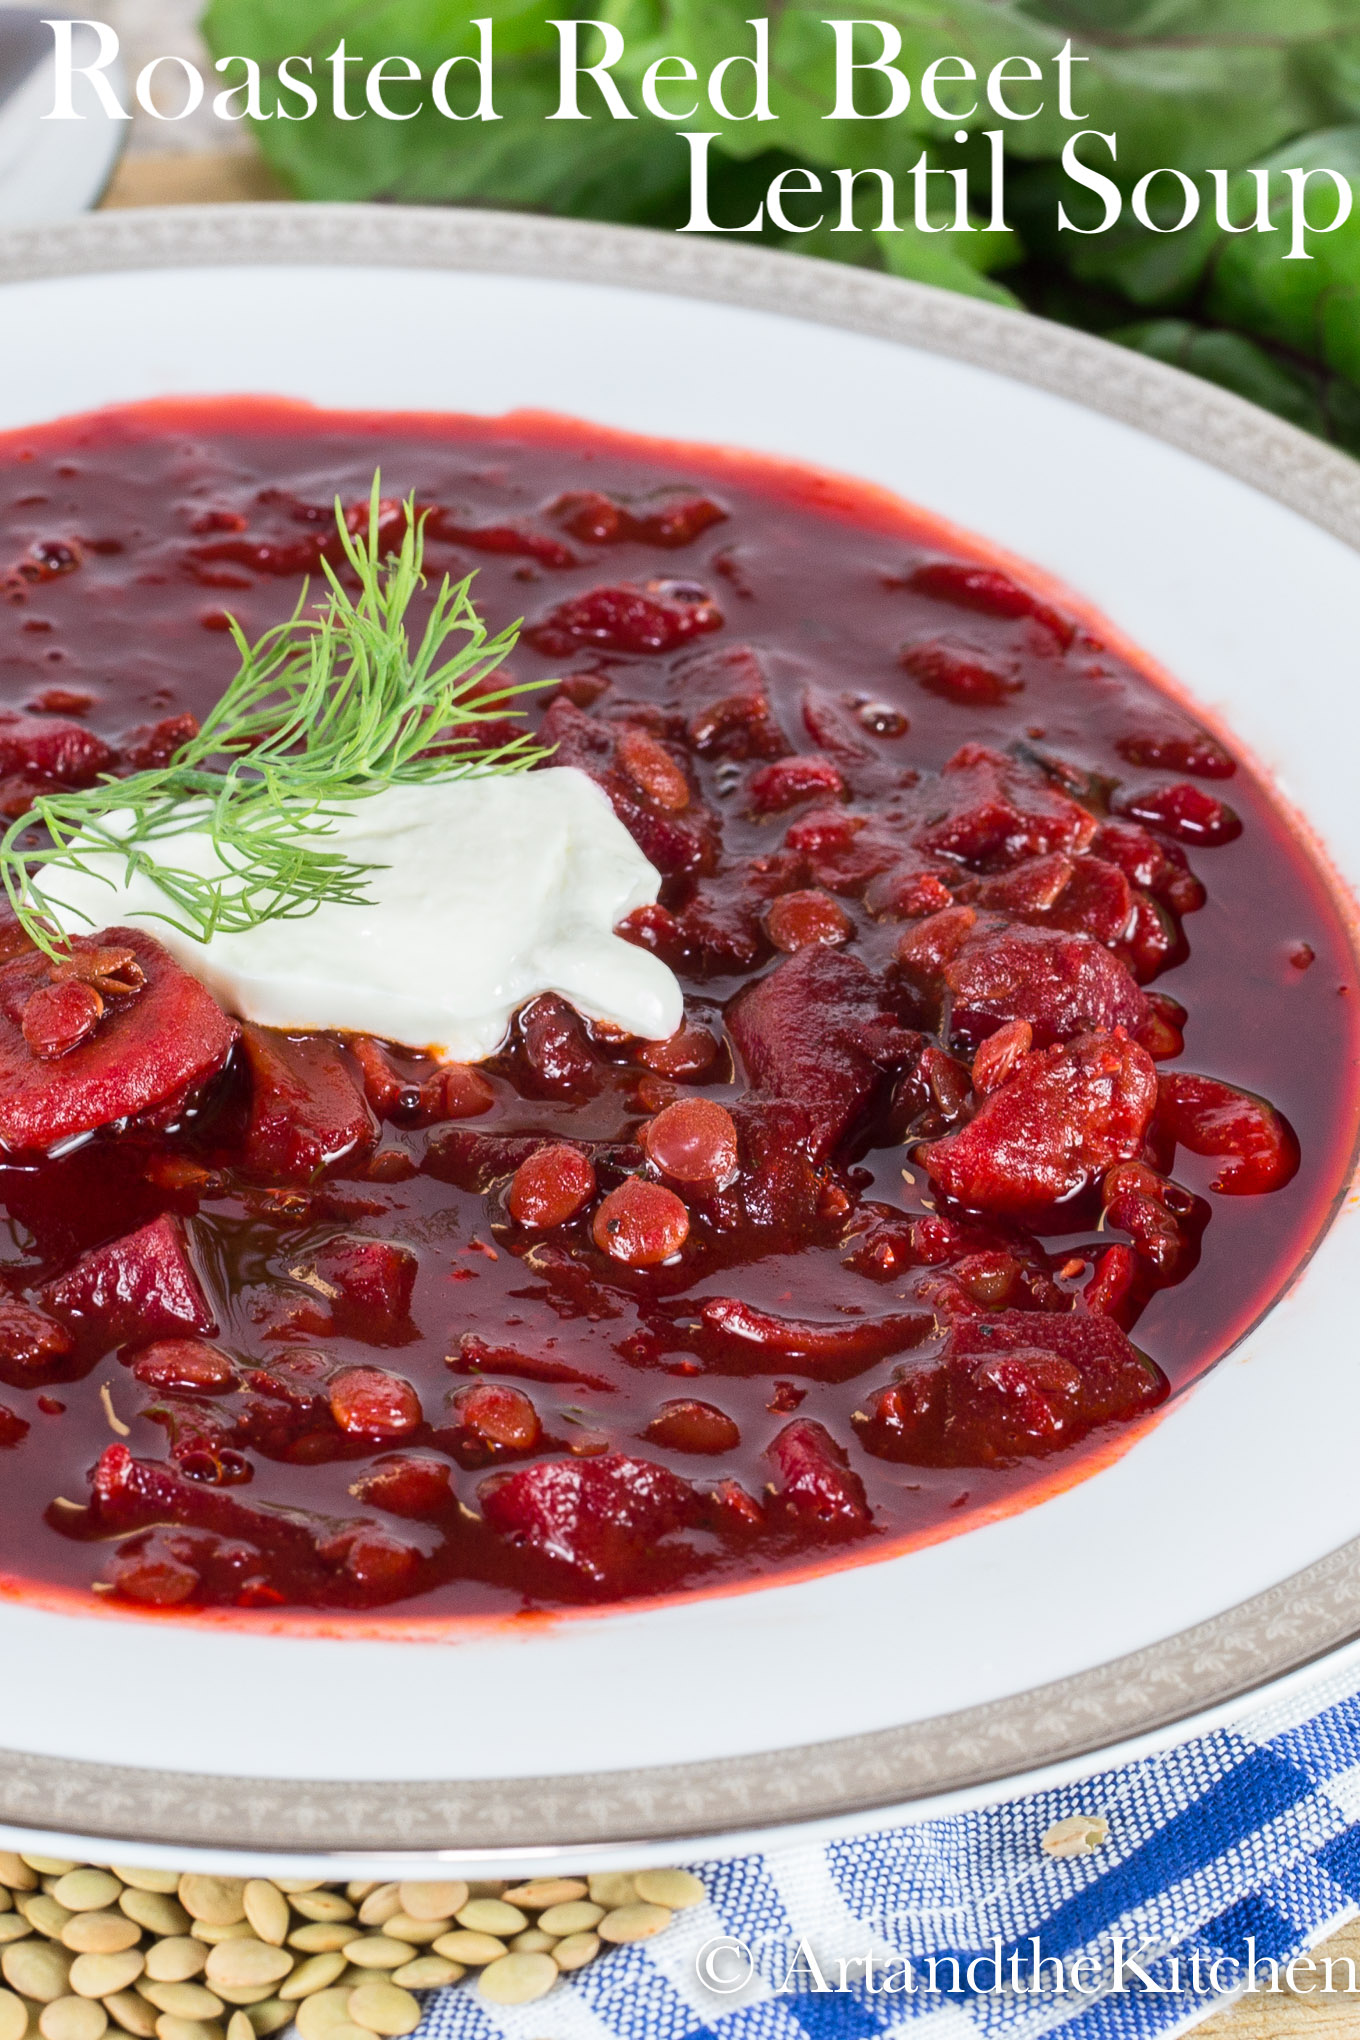 Roasted Red Beet Lentil Soup